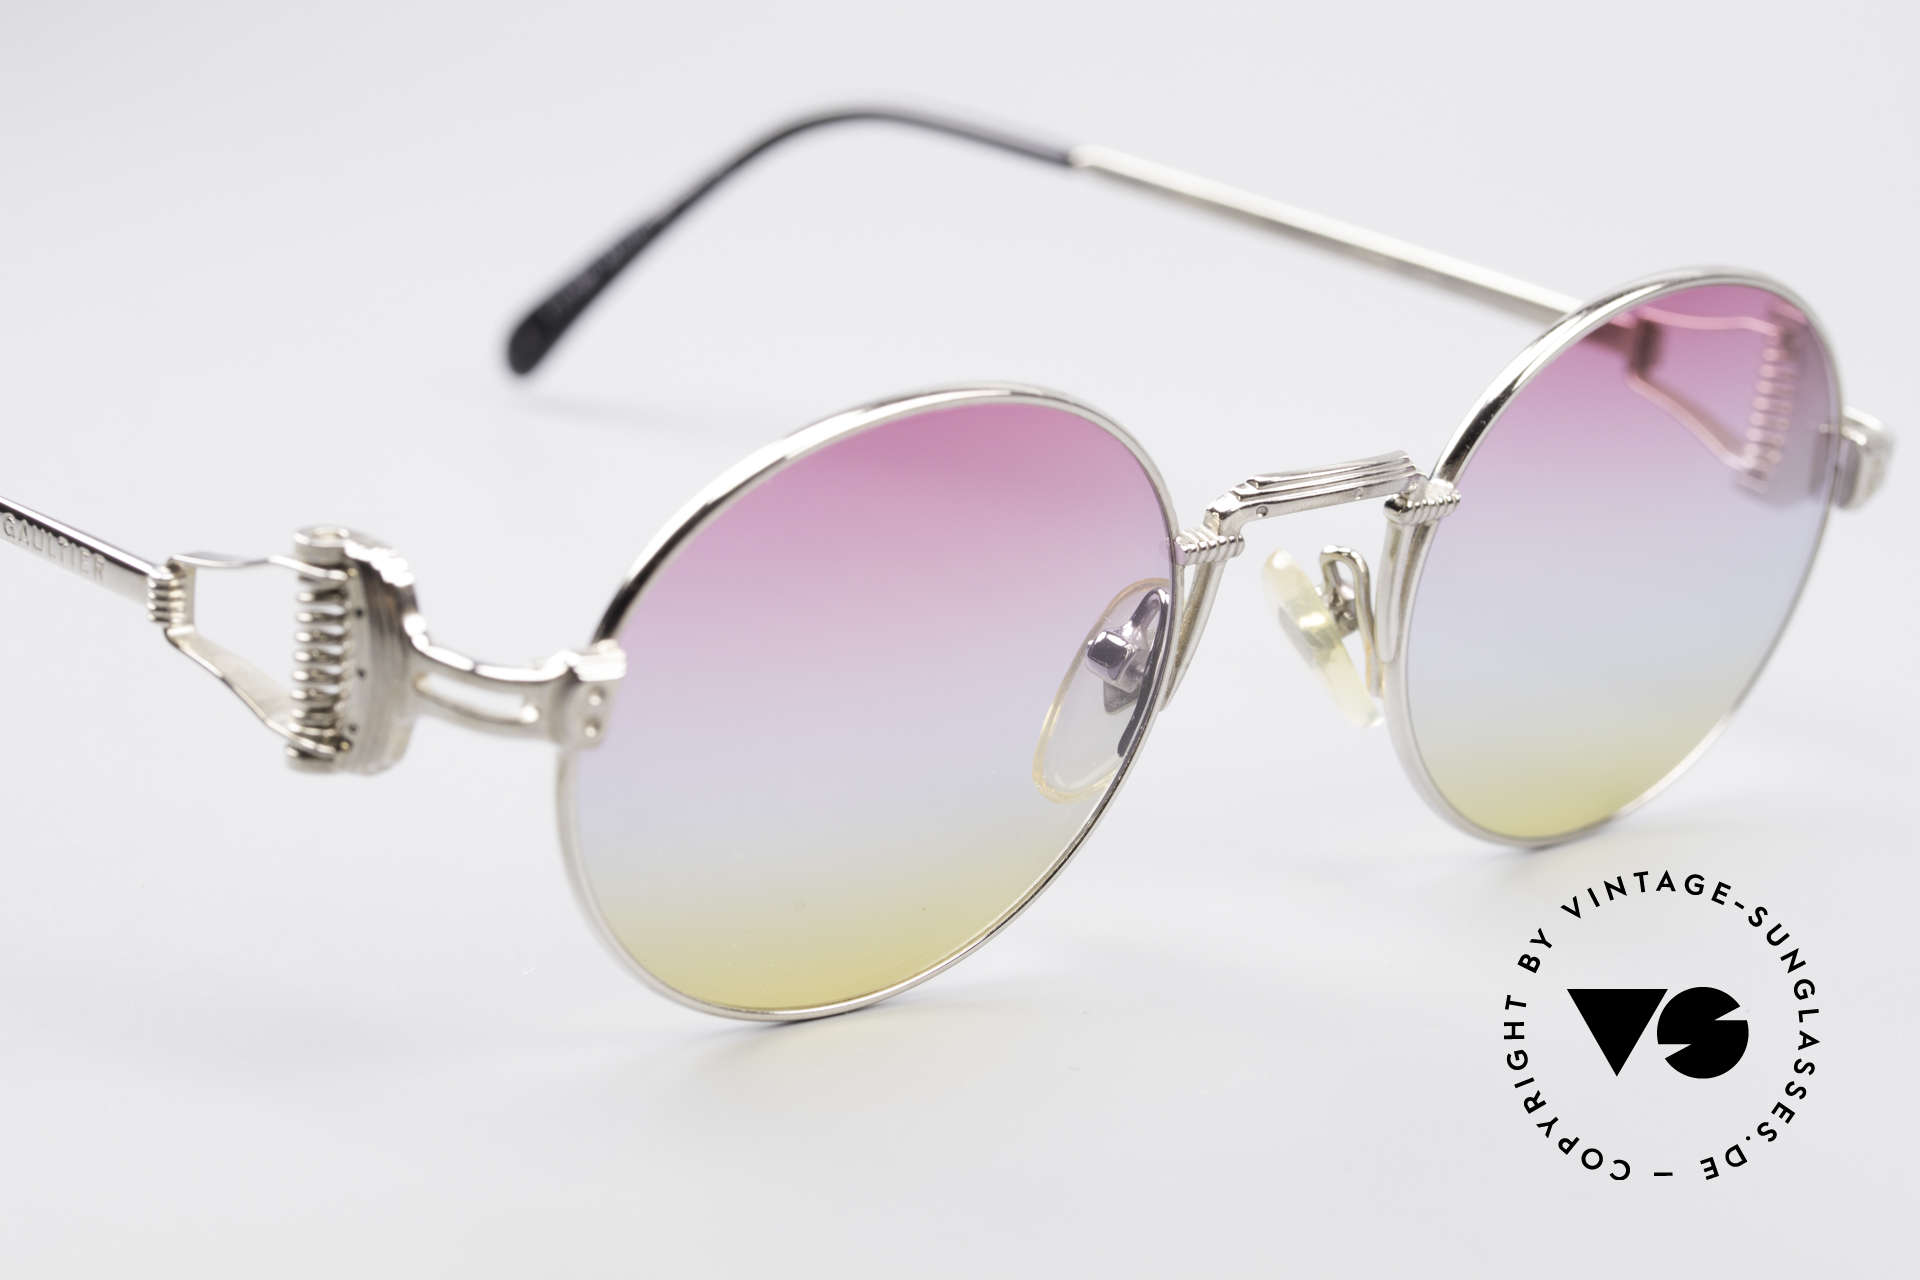 Jean Paul Gaultier 55-5106 Designer Vintage Shades, the triple tint looks like a sunrise (simply heavenly :-), Made for Men and Women